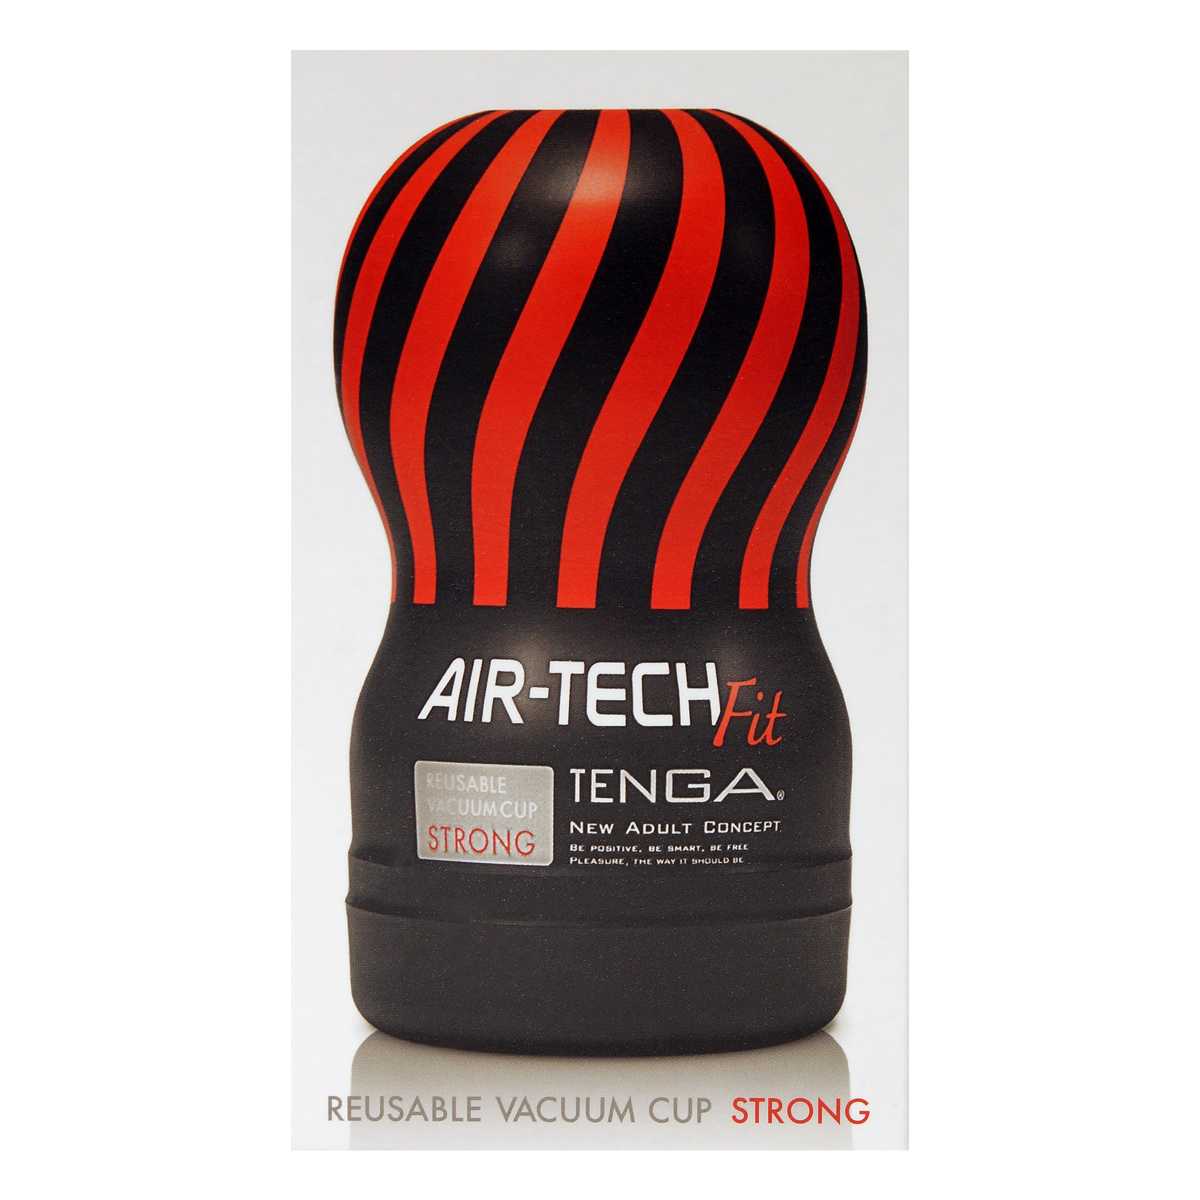 TENGA AIR-TECH Fit REUSABLE VACUUM CUP STRONG